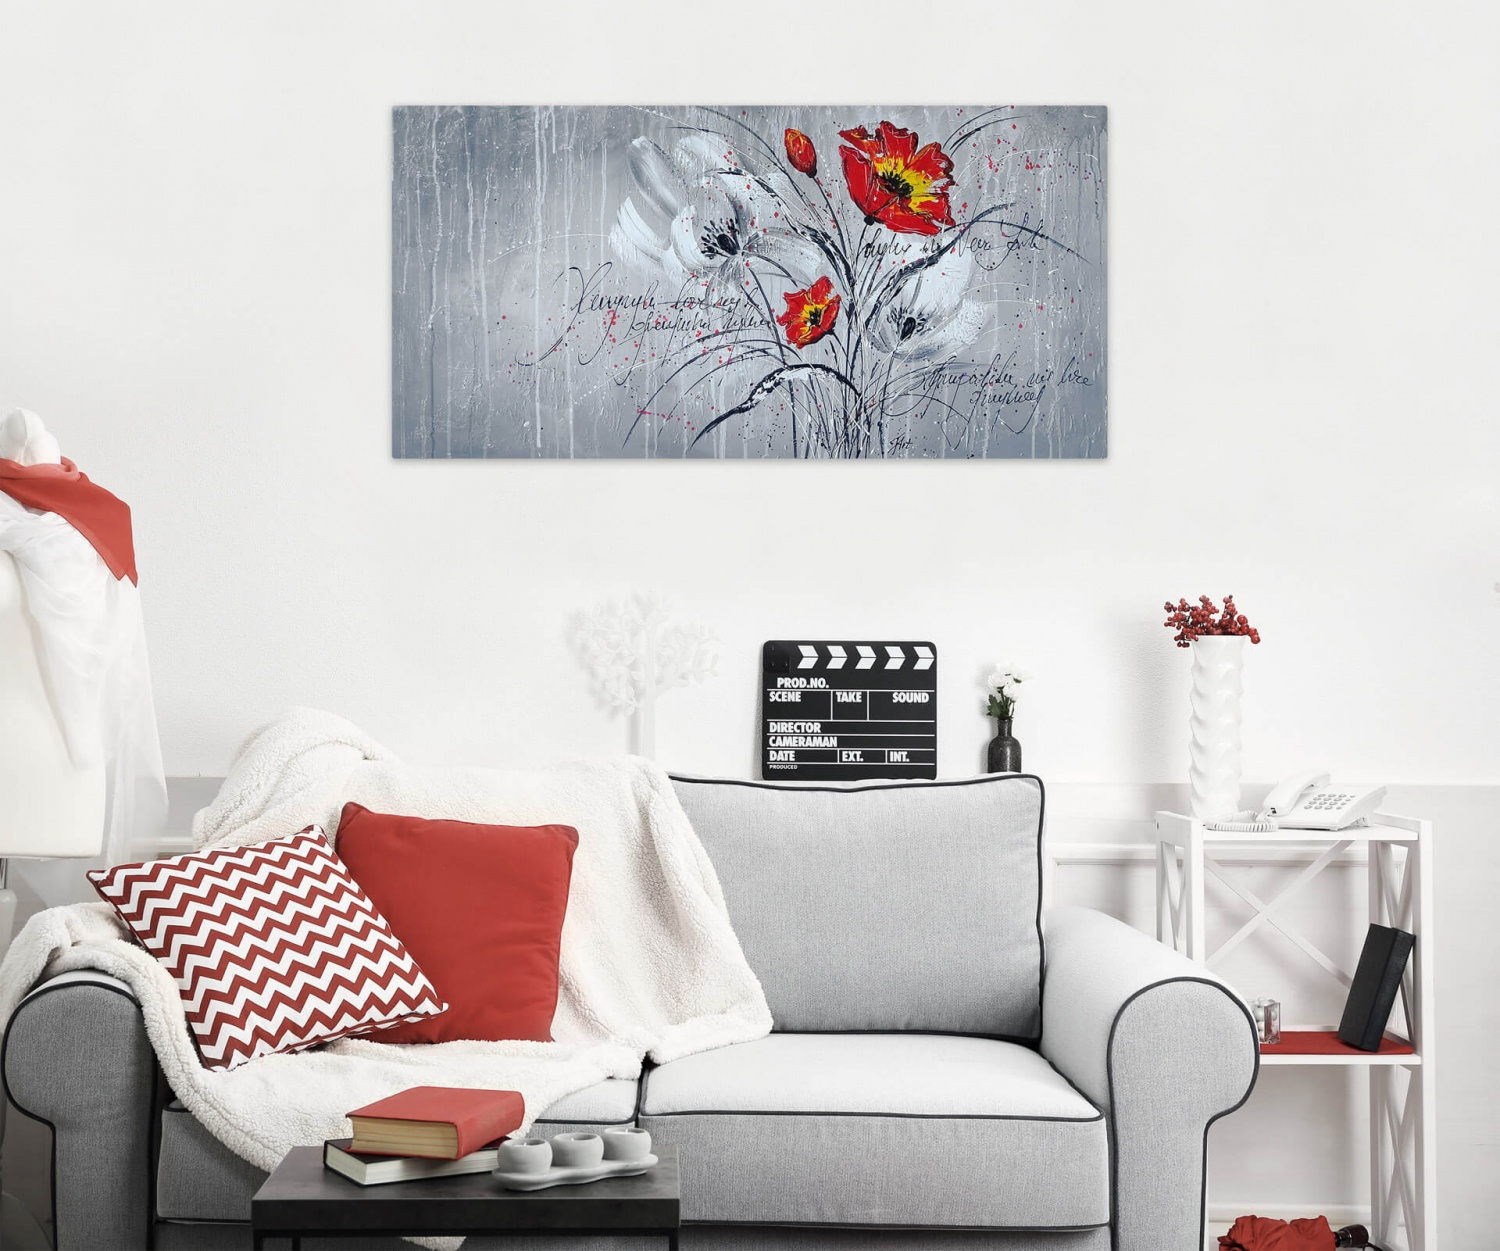 acryl gem lde 39 abstrakt rot grau blume flower 39 handgemalt leinwand bilder ebay. Black Bedroom Furniture Sets. Home Design Ideas